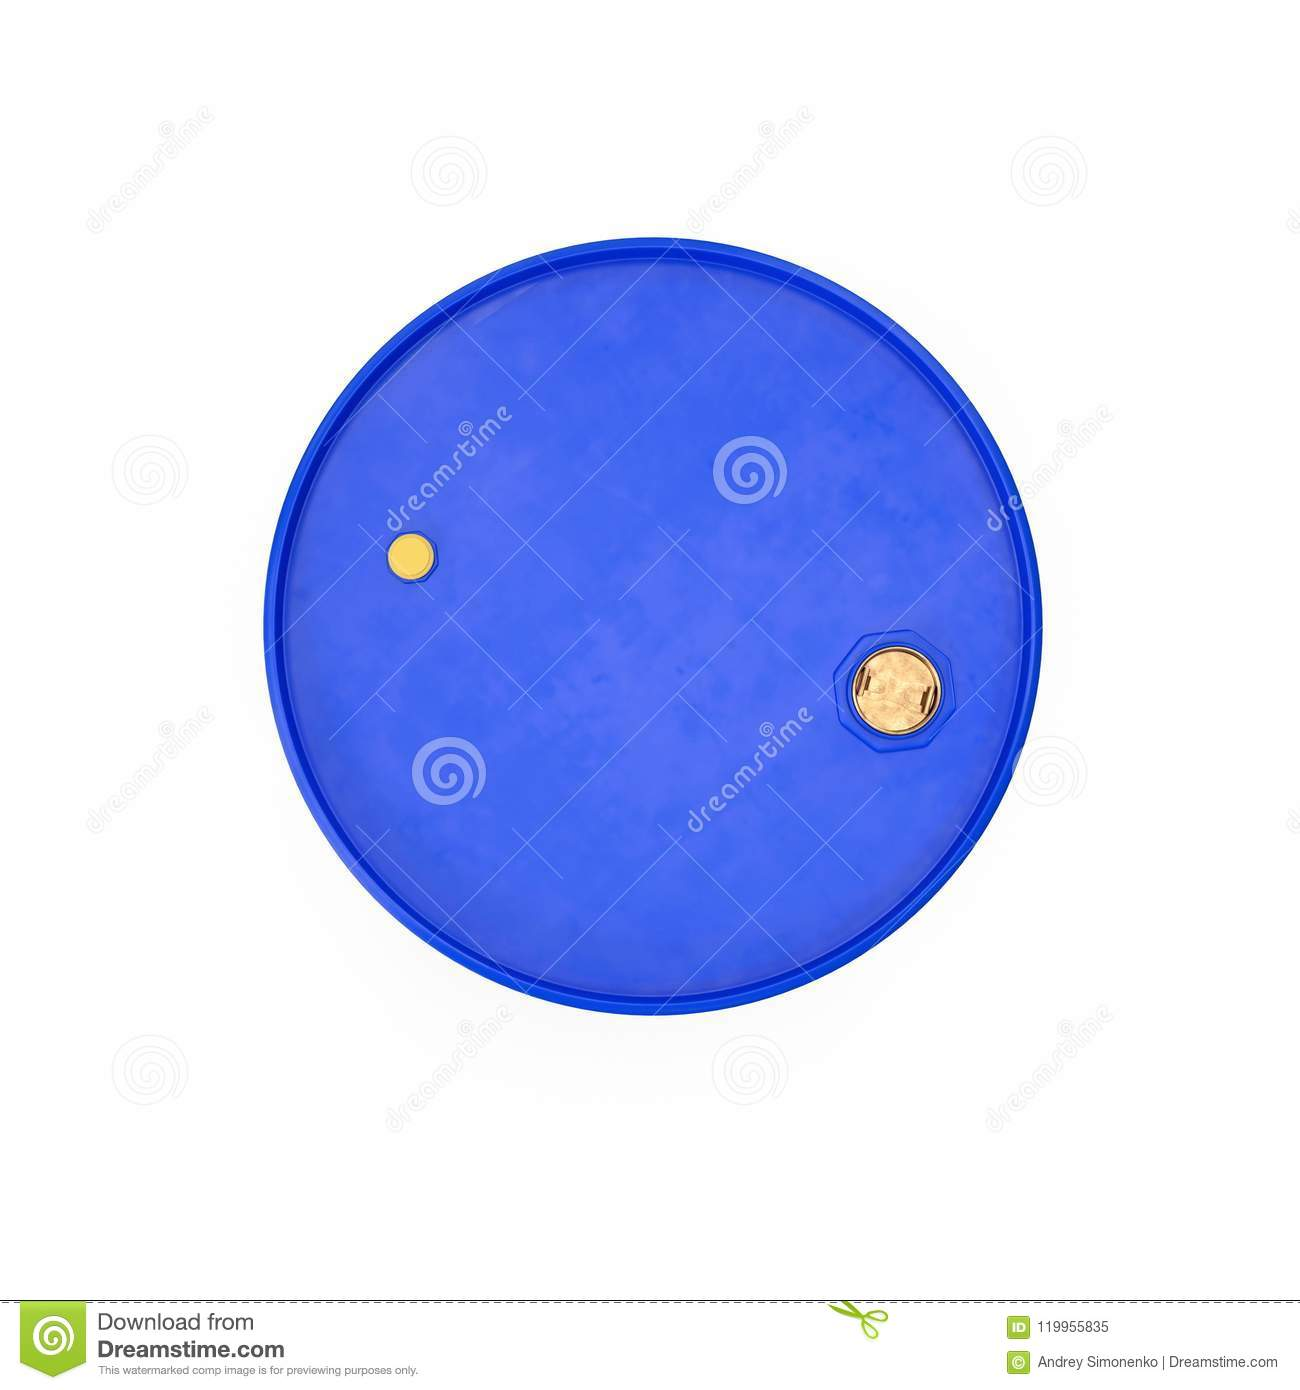 Blue Metal Oil Drum Isolated on White. Top view. 3D illustration